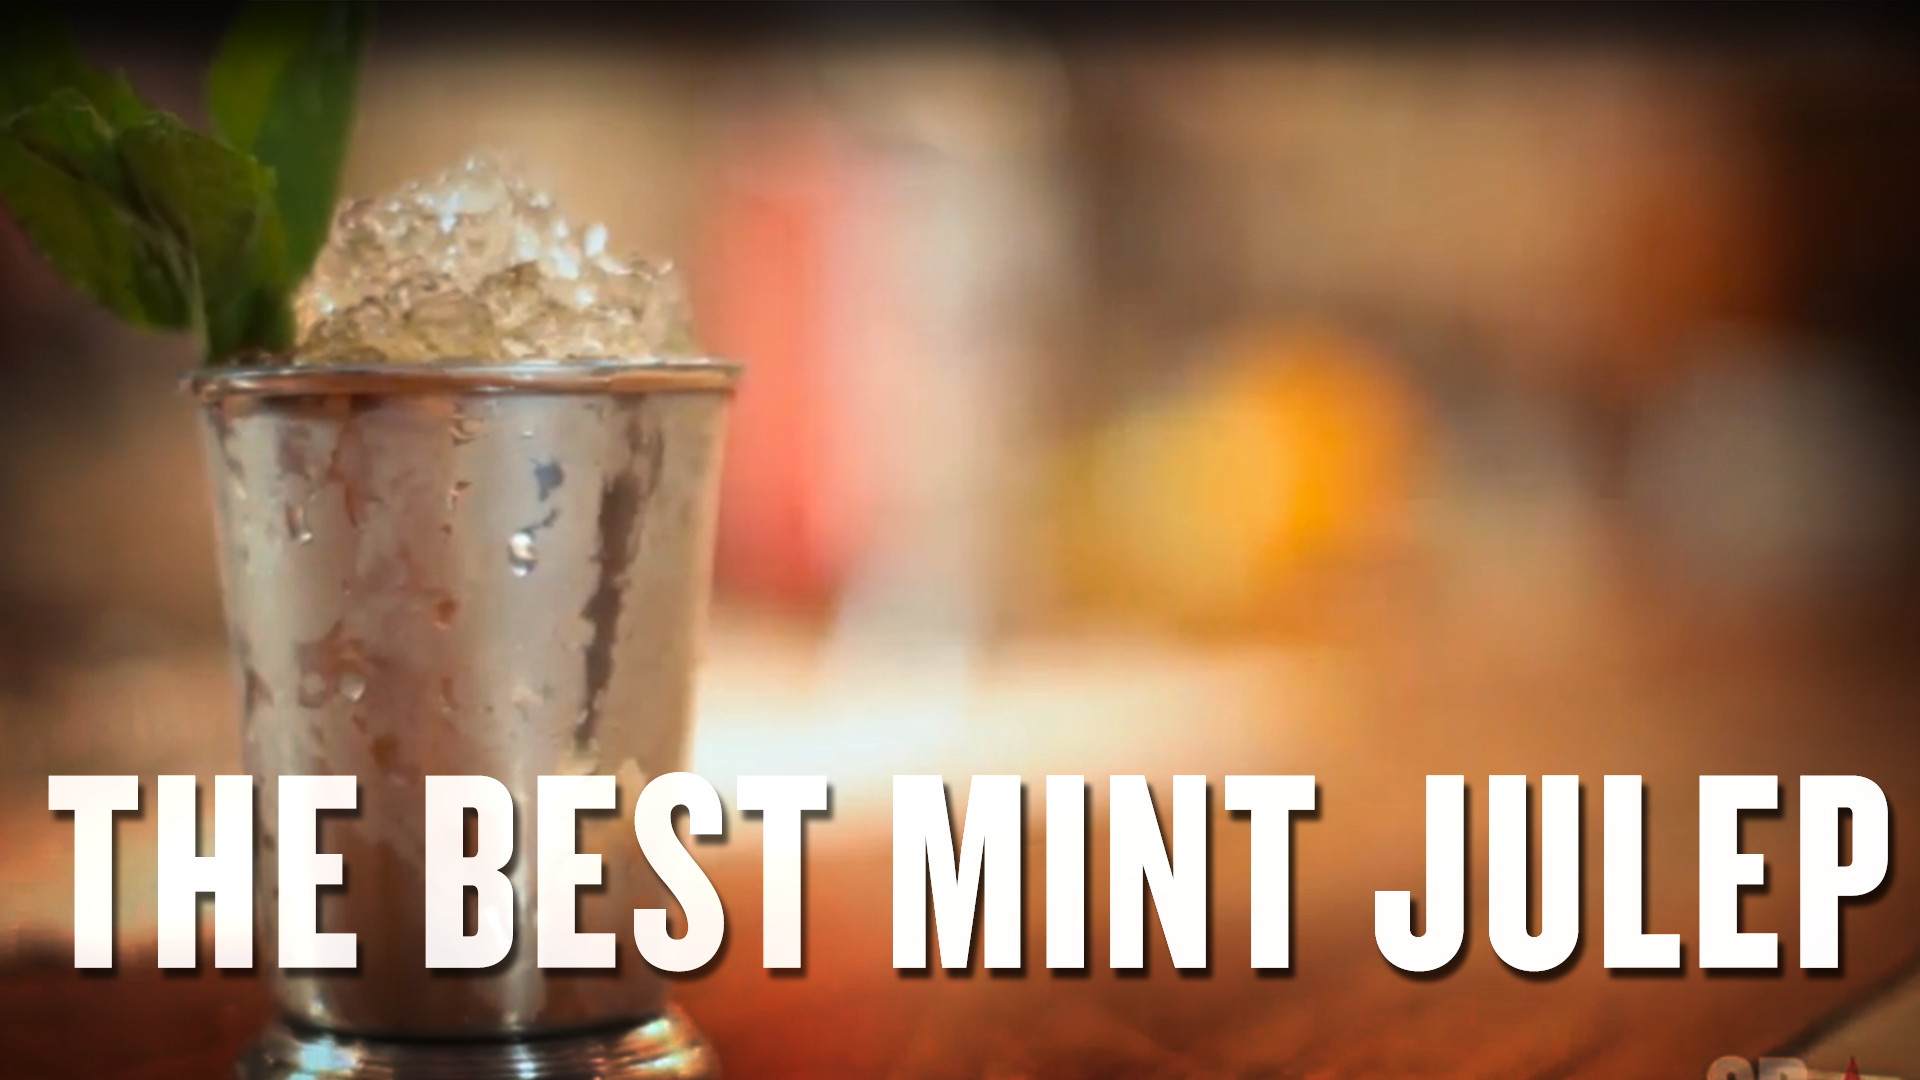 Surprise...The Kentucky Derby Hasn't Sold Real Mint Juleps in 18 Years